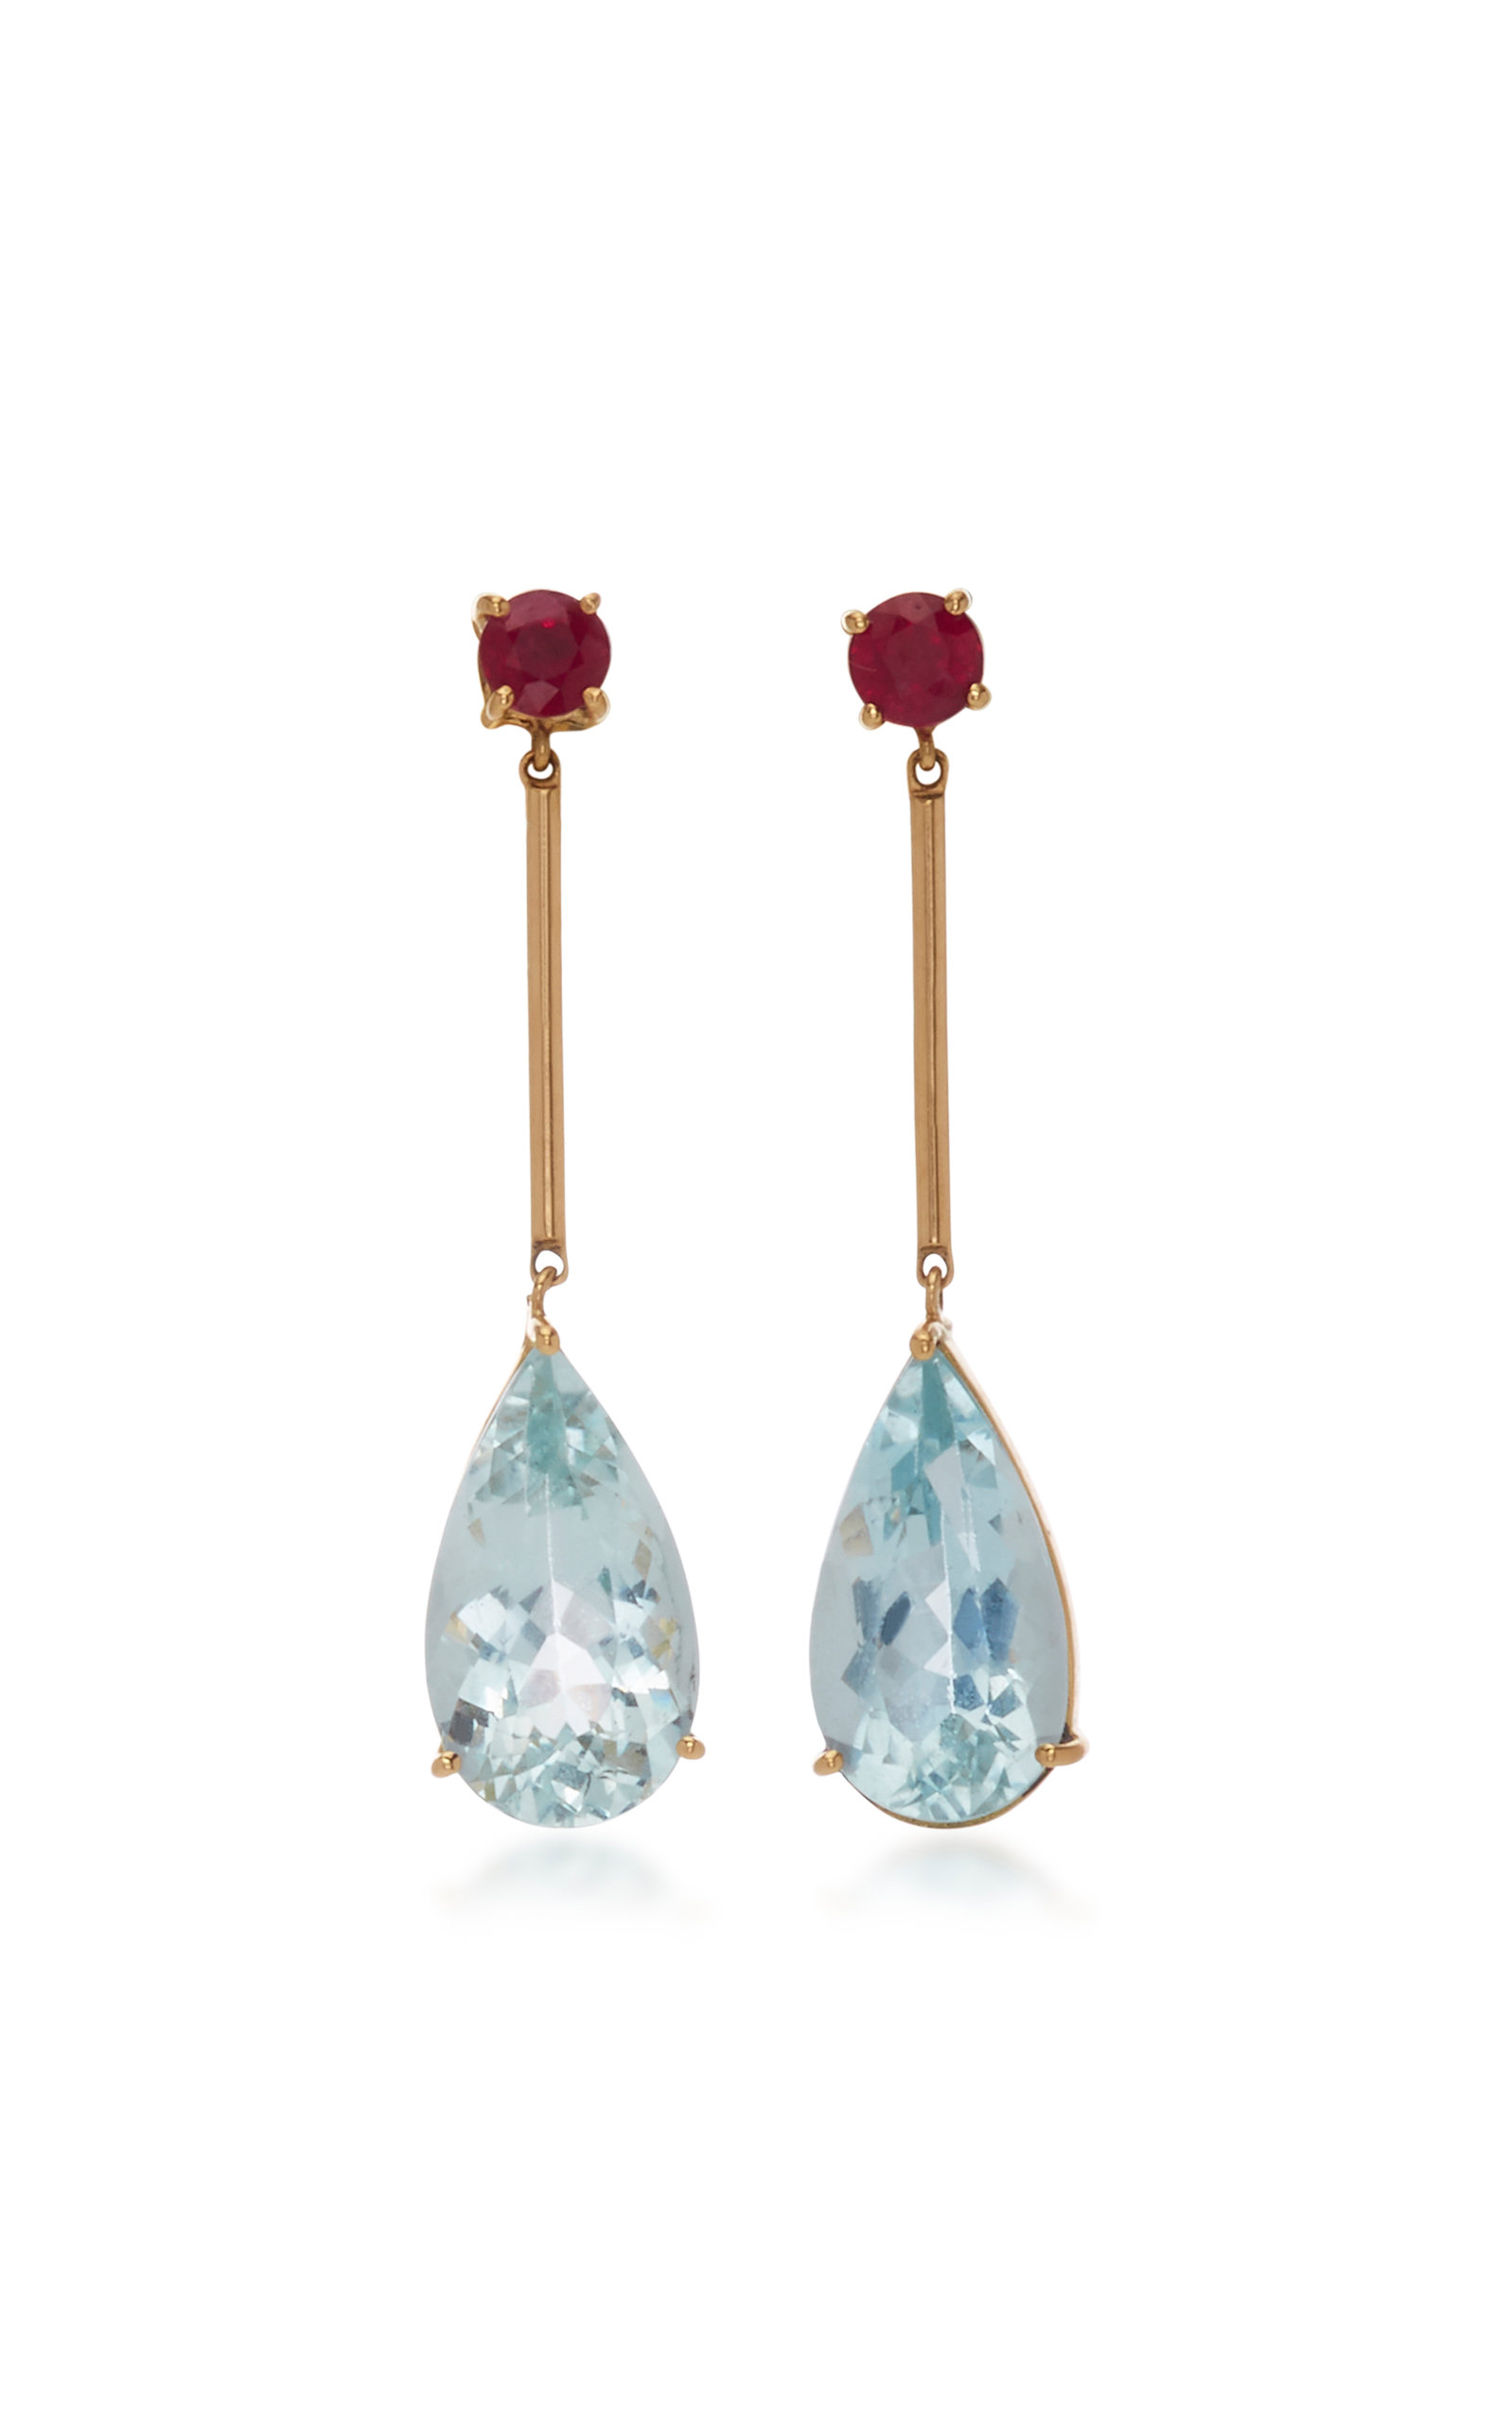 YI COLLECTION 18K Gold Aquamarine And Ruby Earrings in Blue